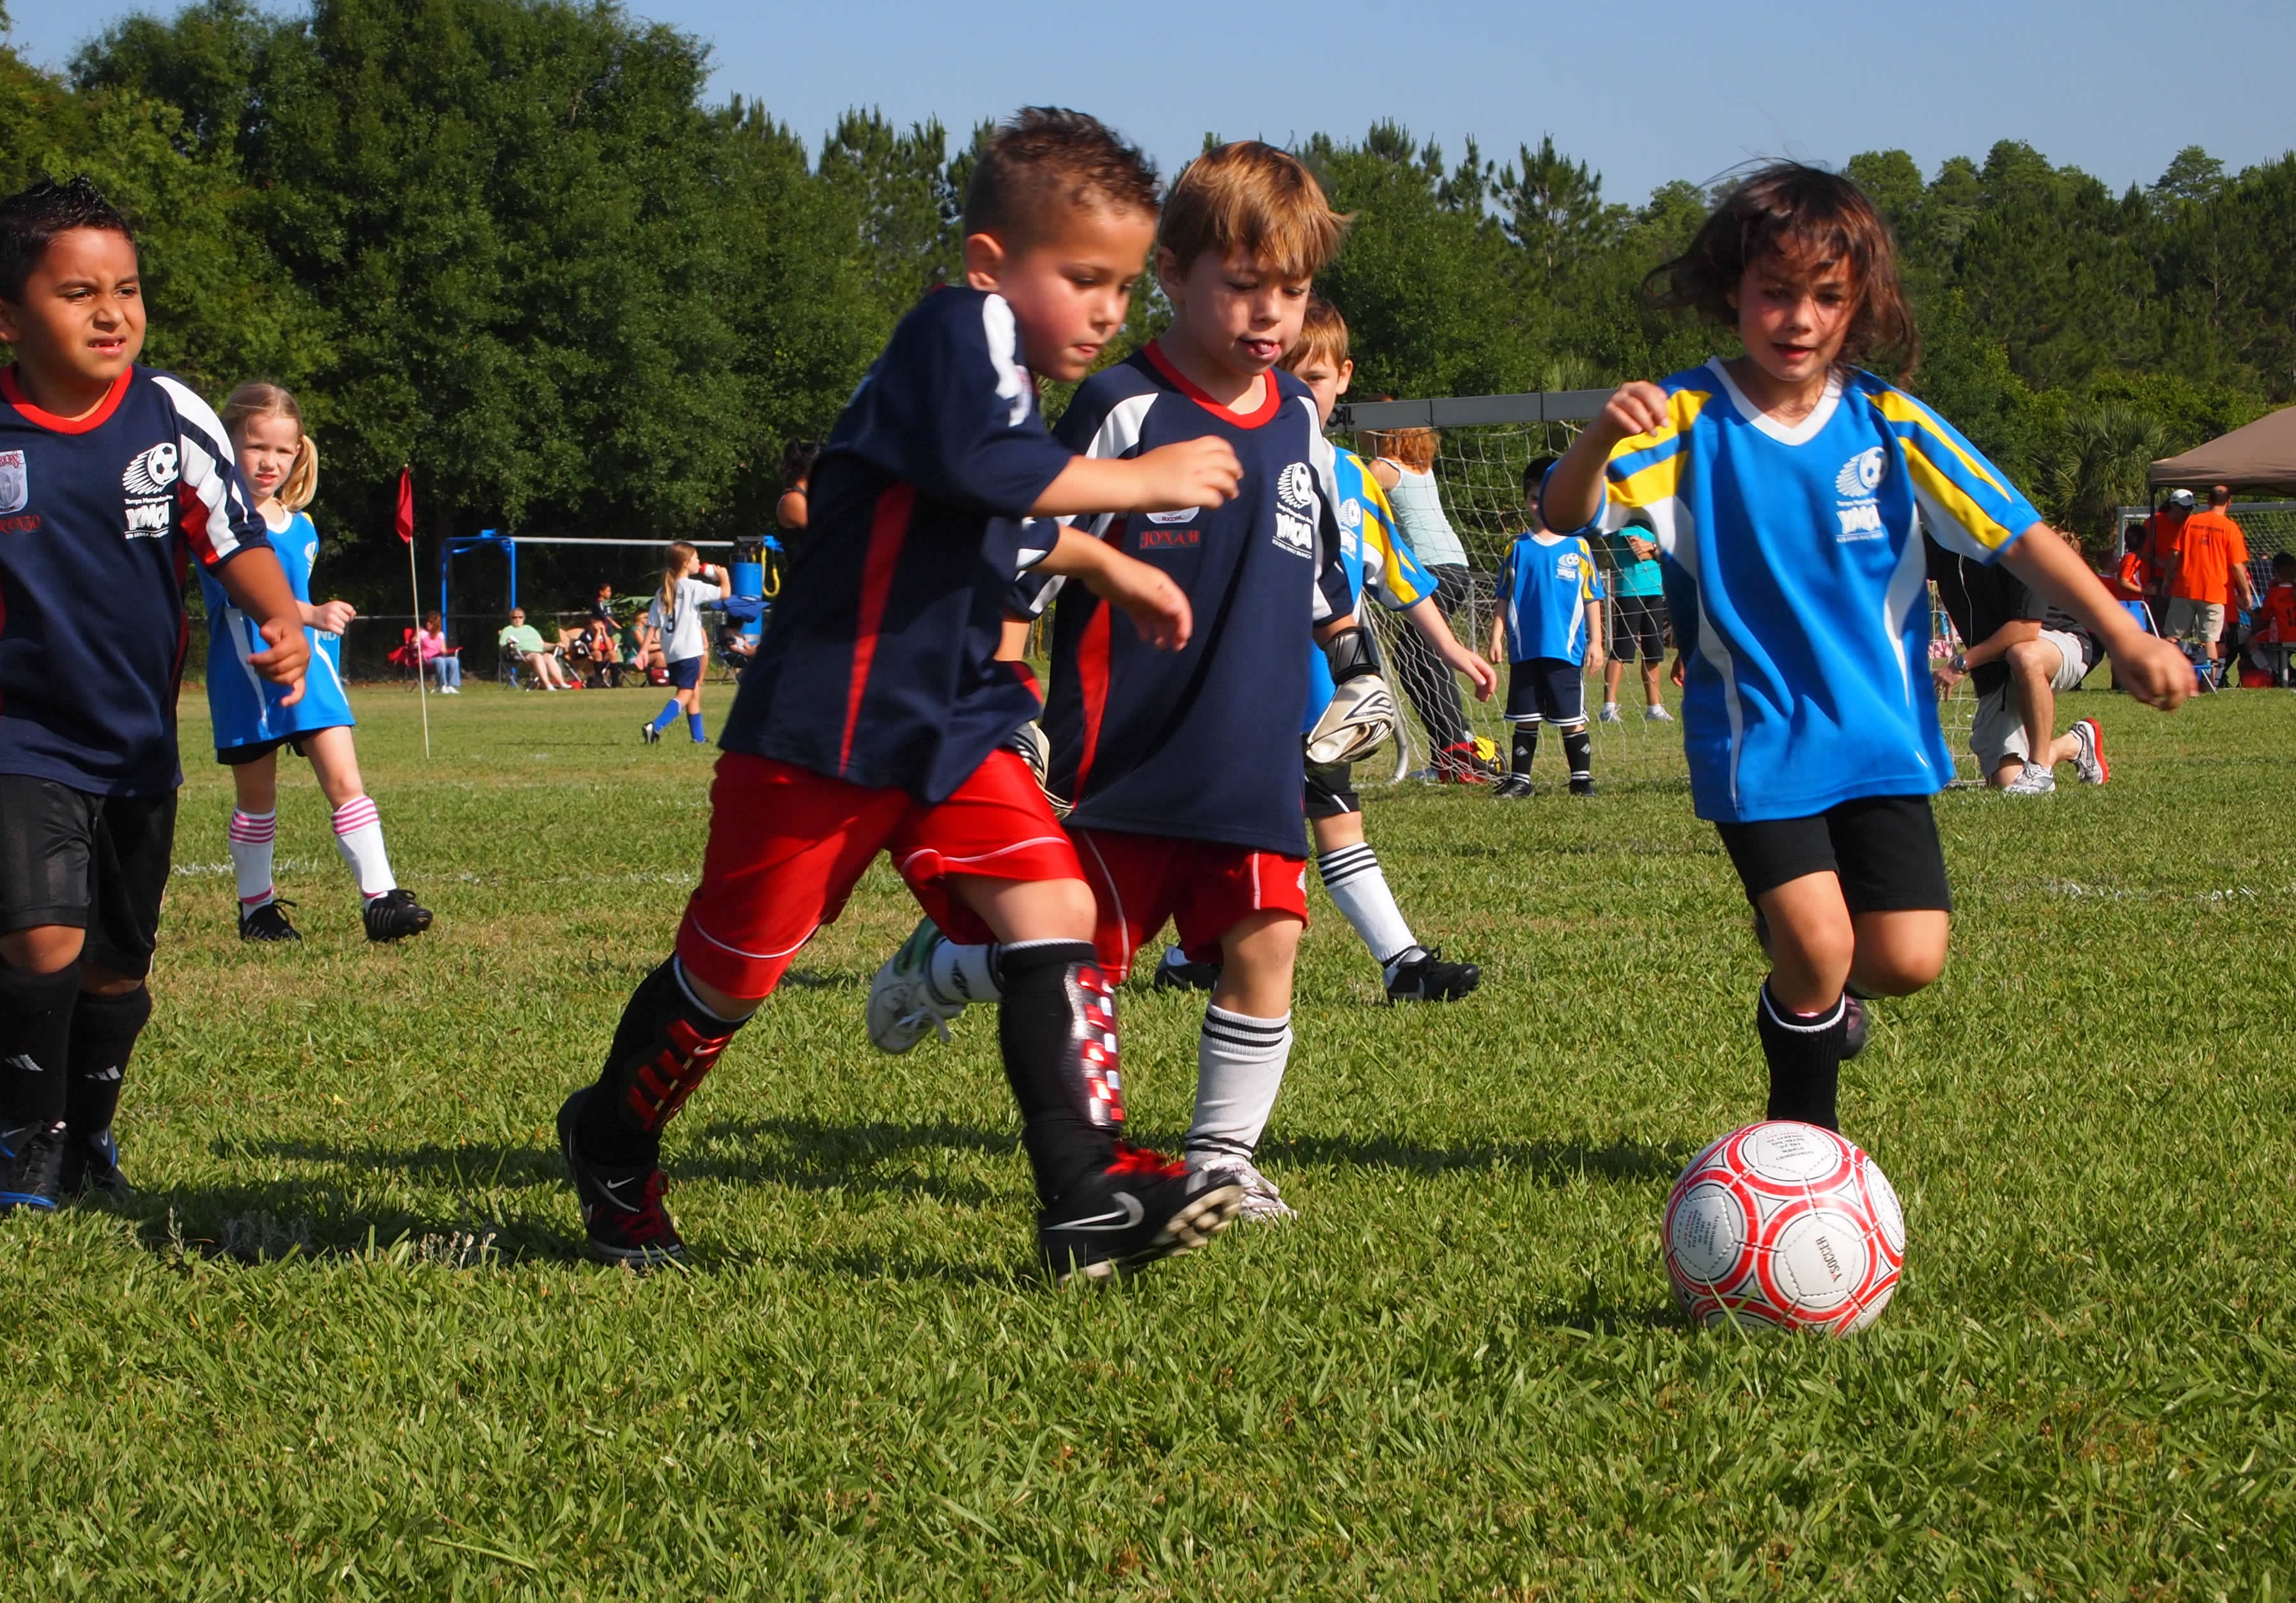 soccer club playing children sport sports play young hobby blogs hometown league academy